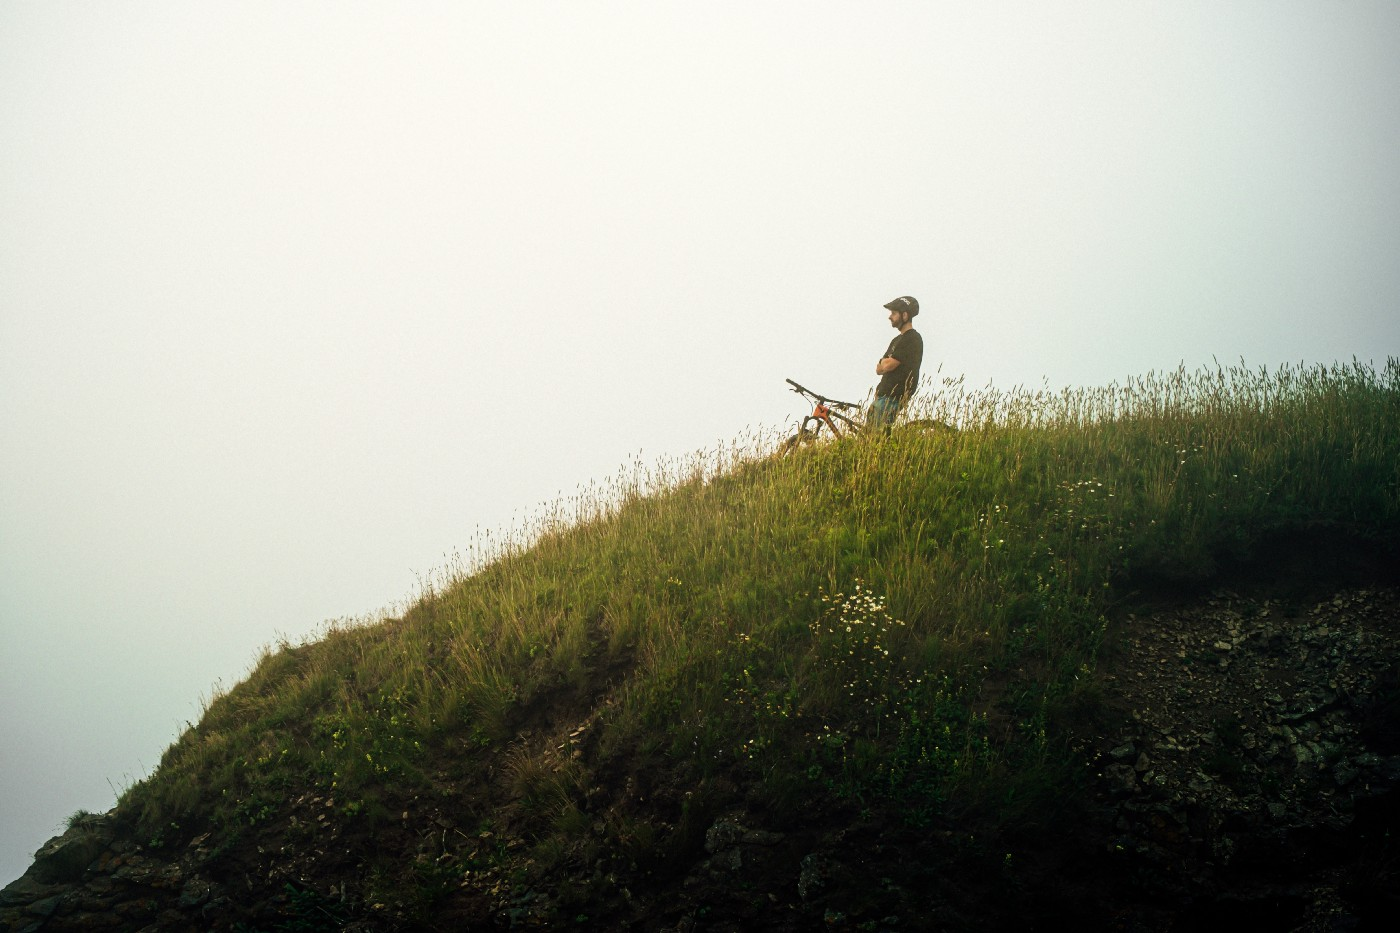 a person on a bike at the top of a hill, looking out into the fog